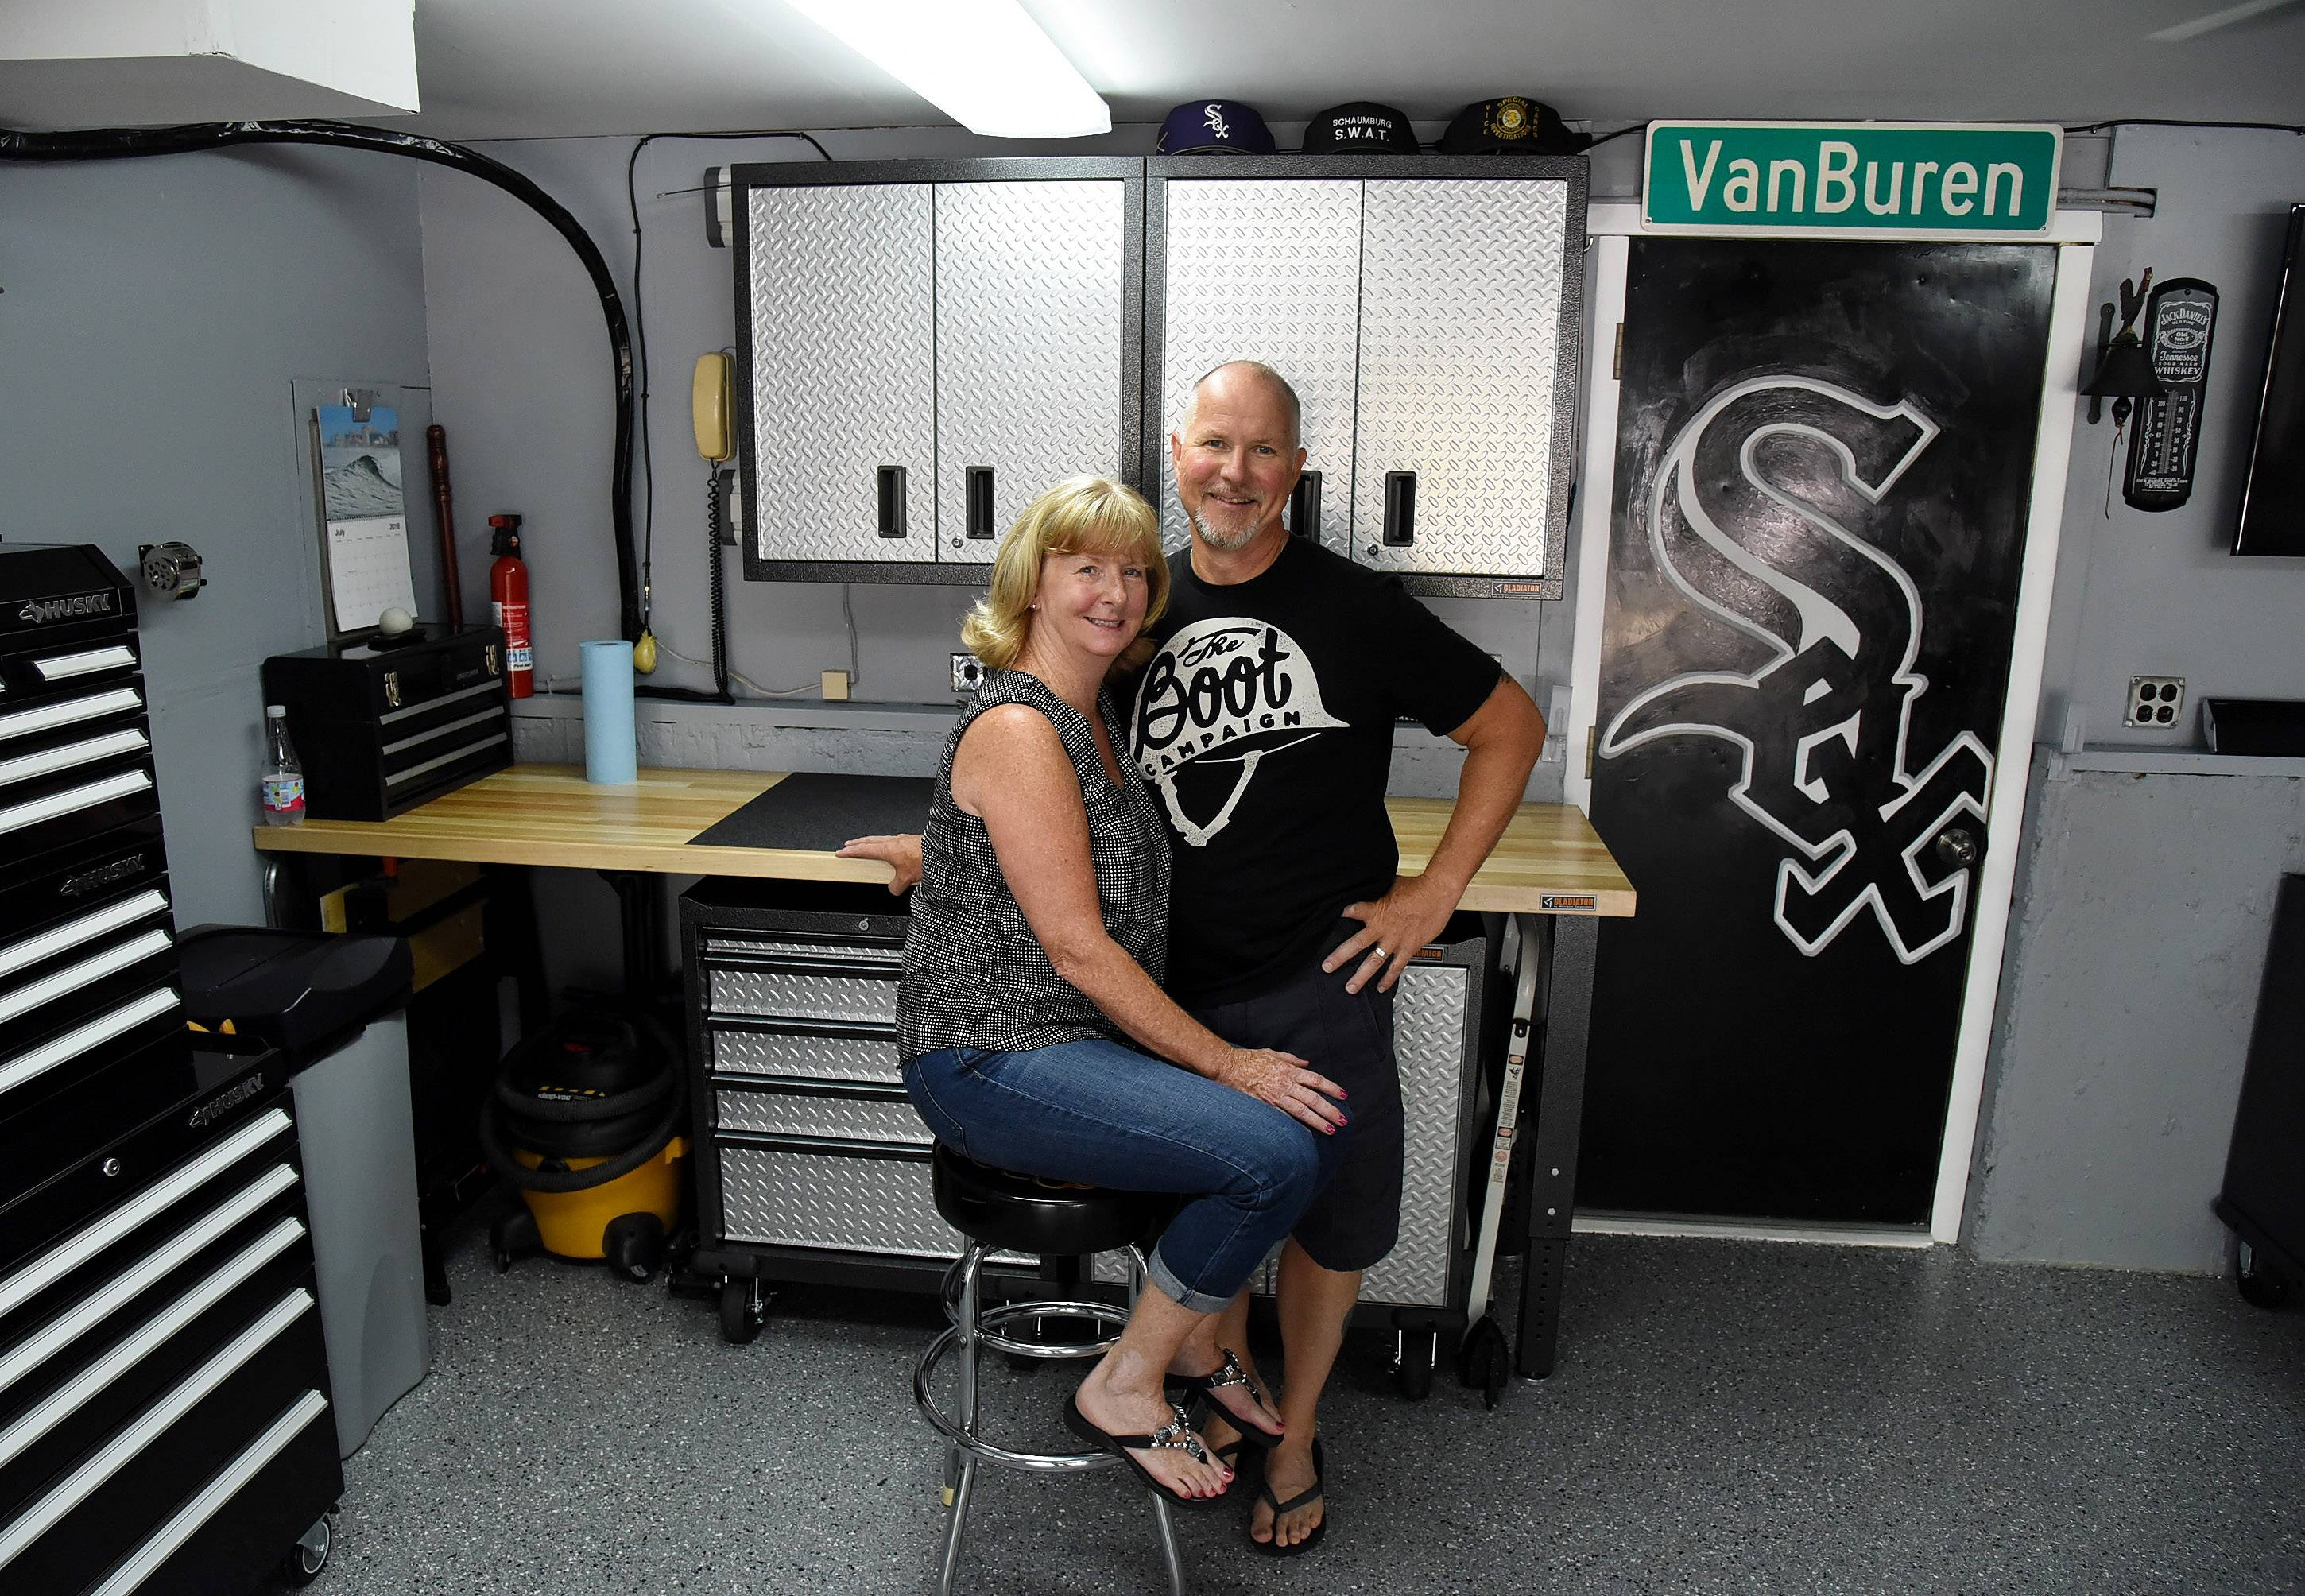 Rob and Liz Ruisz of Schaumburg are the recipients of this summer's Garage Makeover, an annual contest sponsored by the Daily Herald and Garage Store.